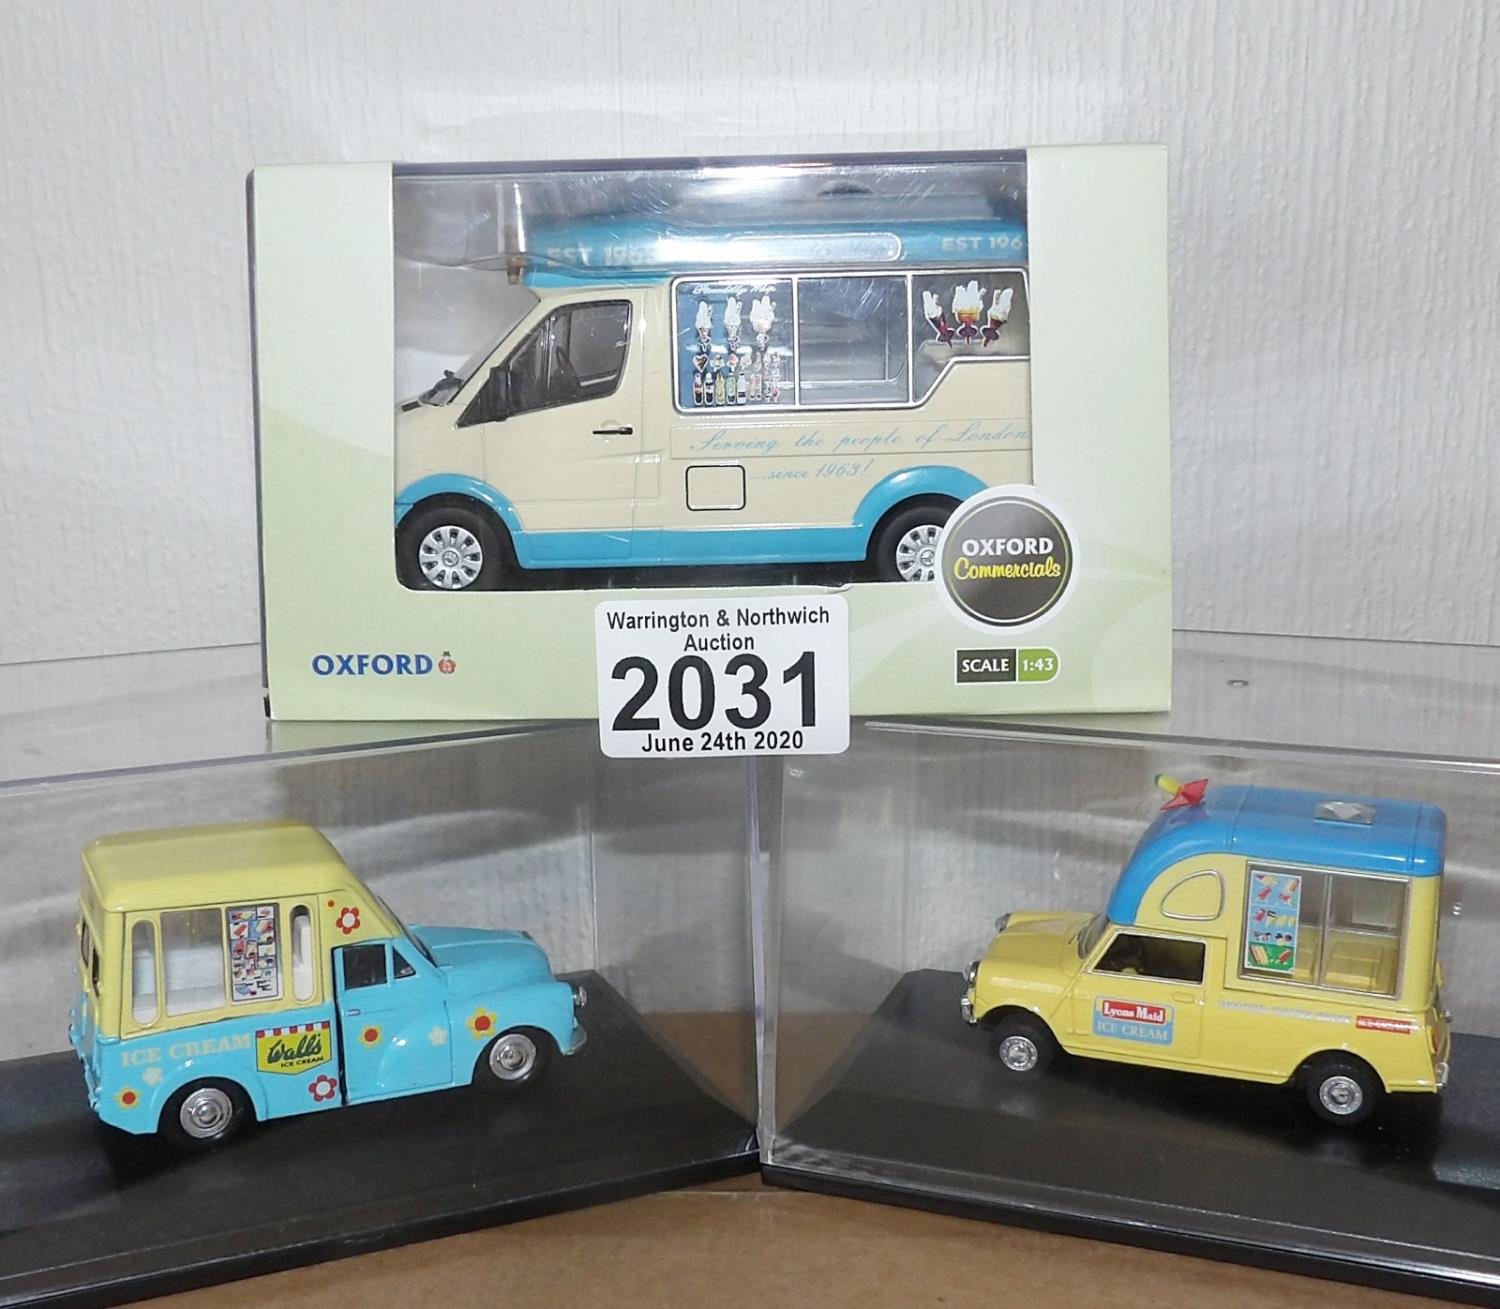 Lot 2031 - Oxford x 3 1.43 Scale Mixed Ice Cream Vans. P&P Group 2 (£18+VAT for the first lot and £2+VAT for